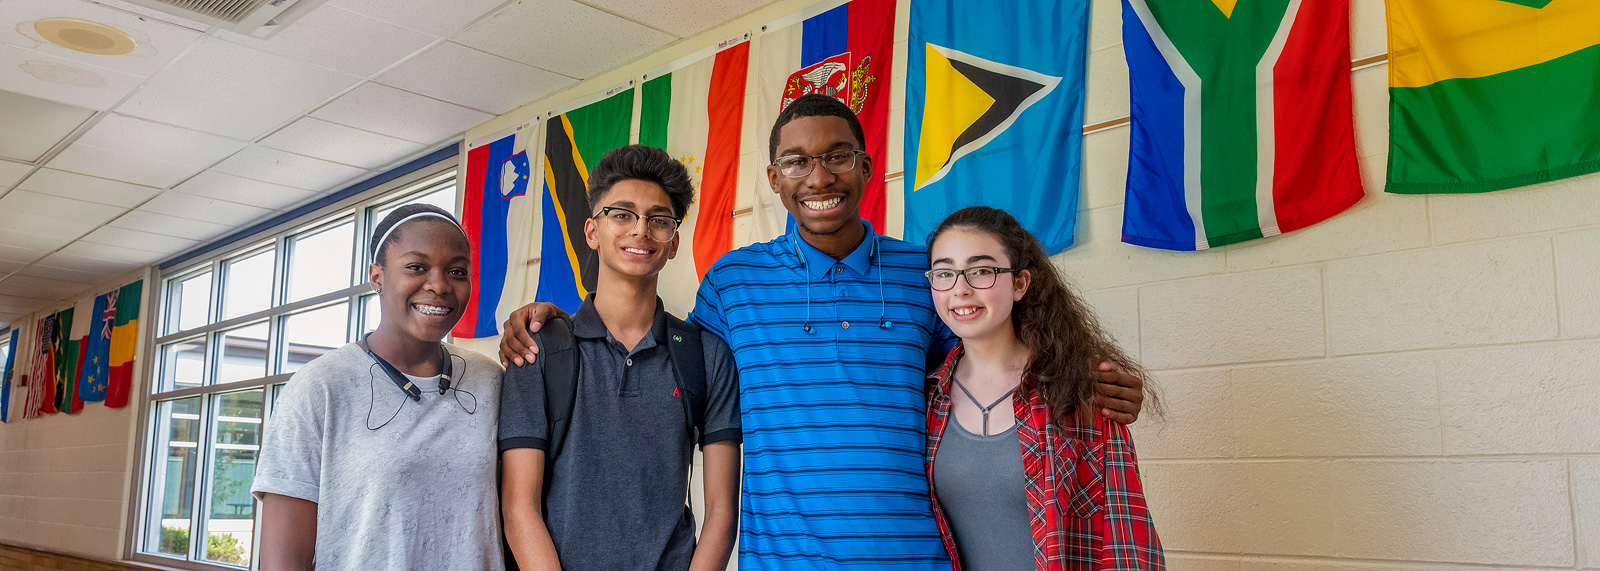 WiHi students Karis Hawkins, Hamza Hussain, Chase Wilder and Adi Orlyanchik